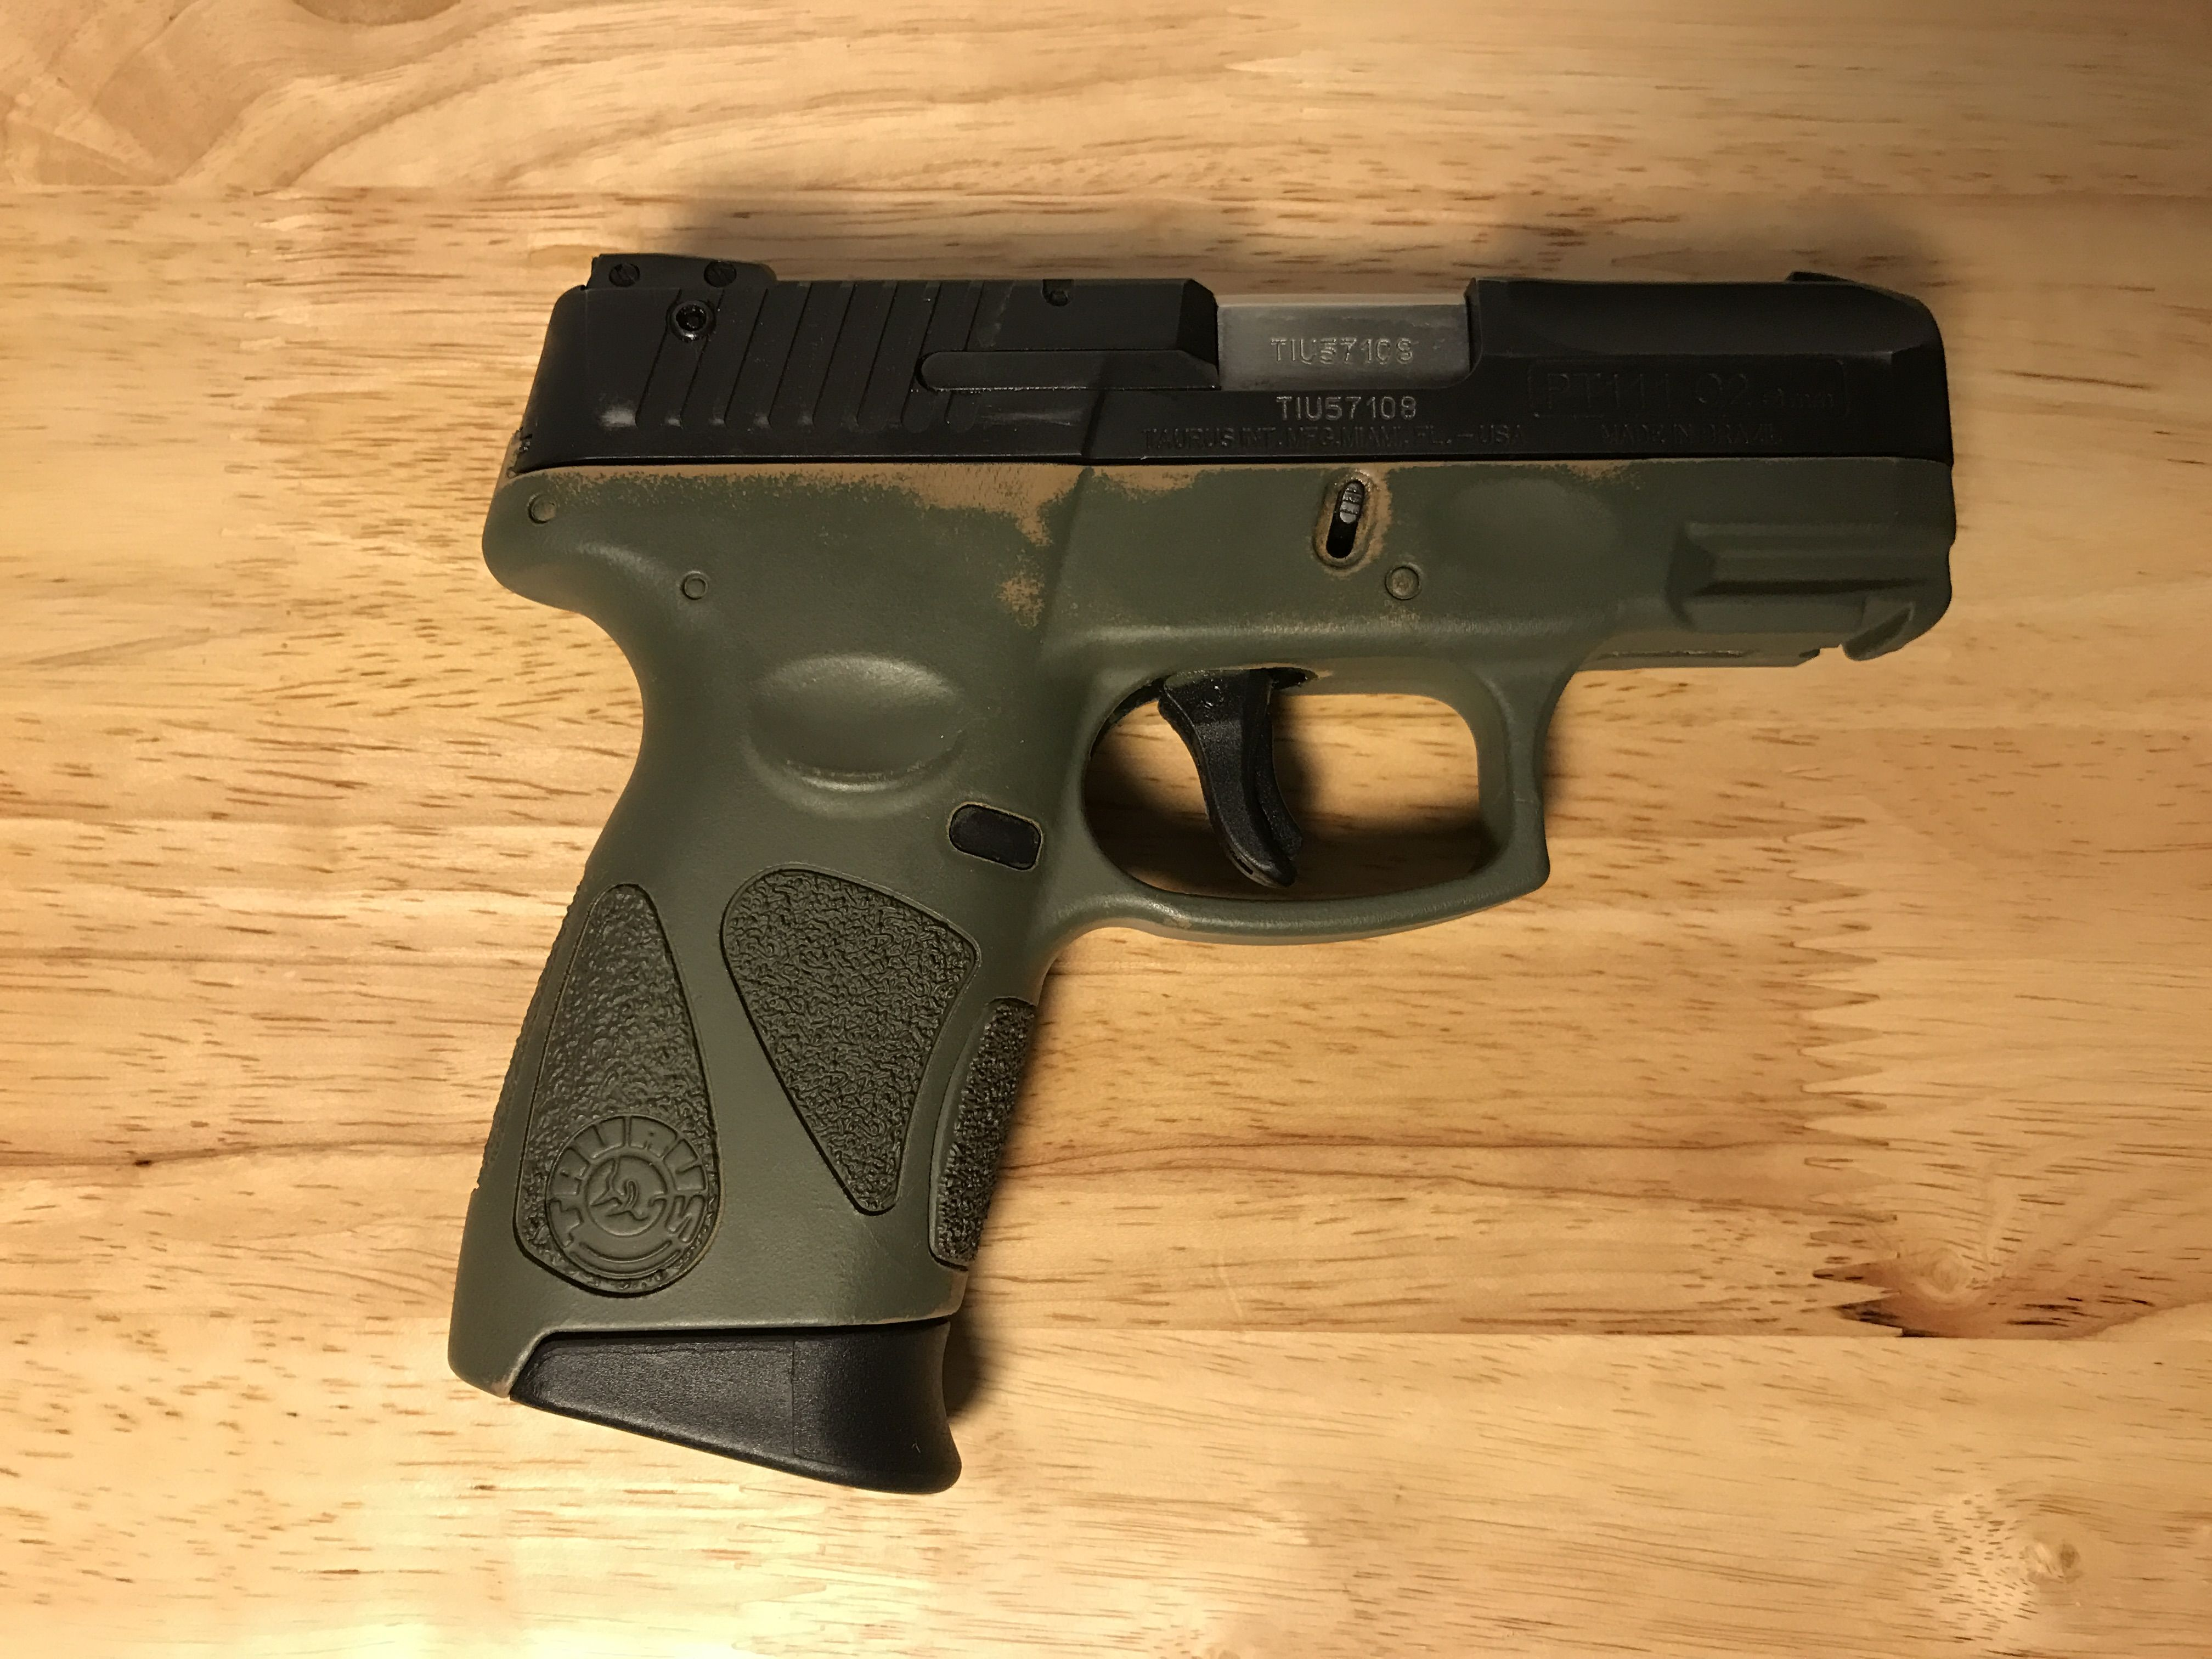 Taurus PT111 Gen 2 9mm, modified with Dark Earth and Flat Green